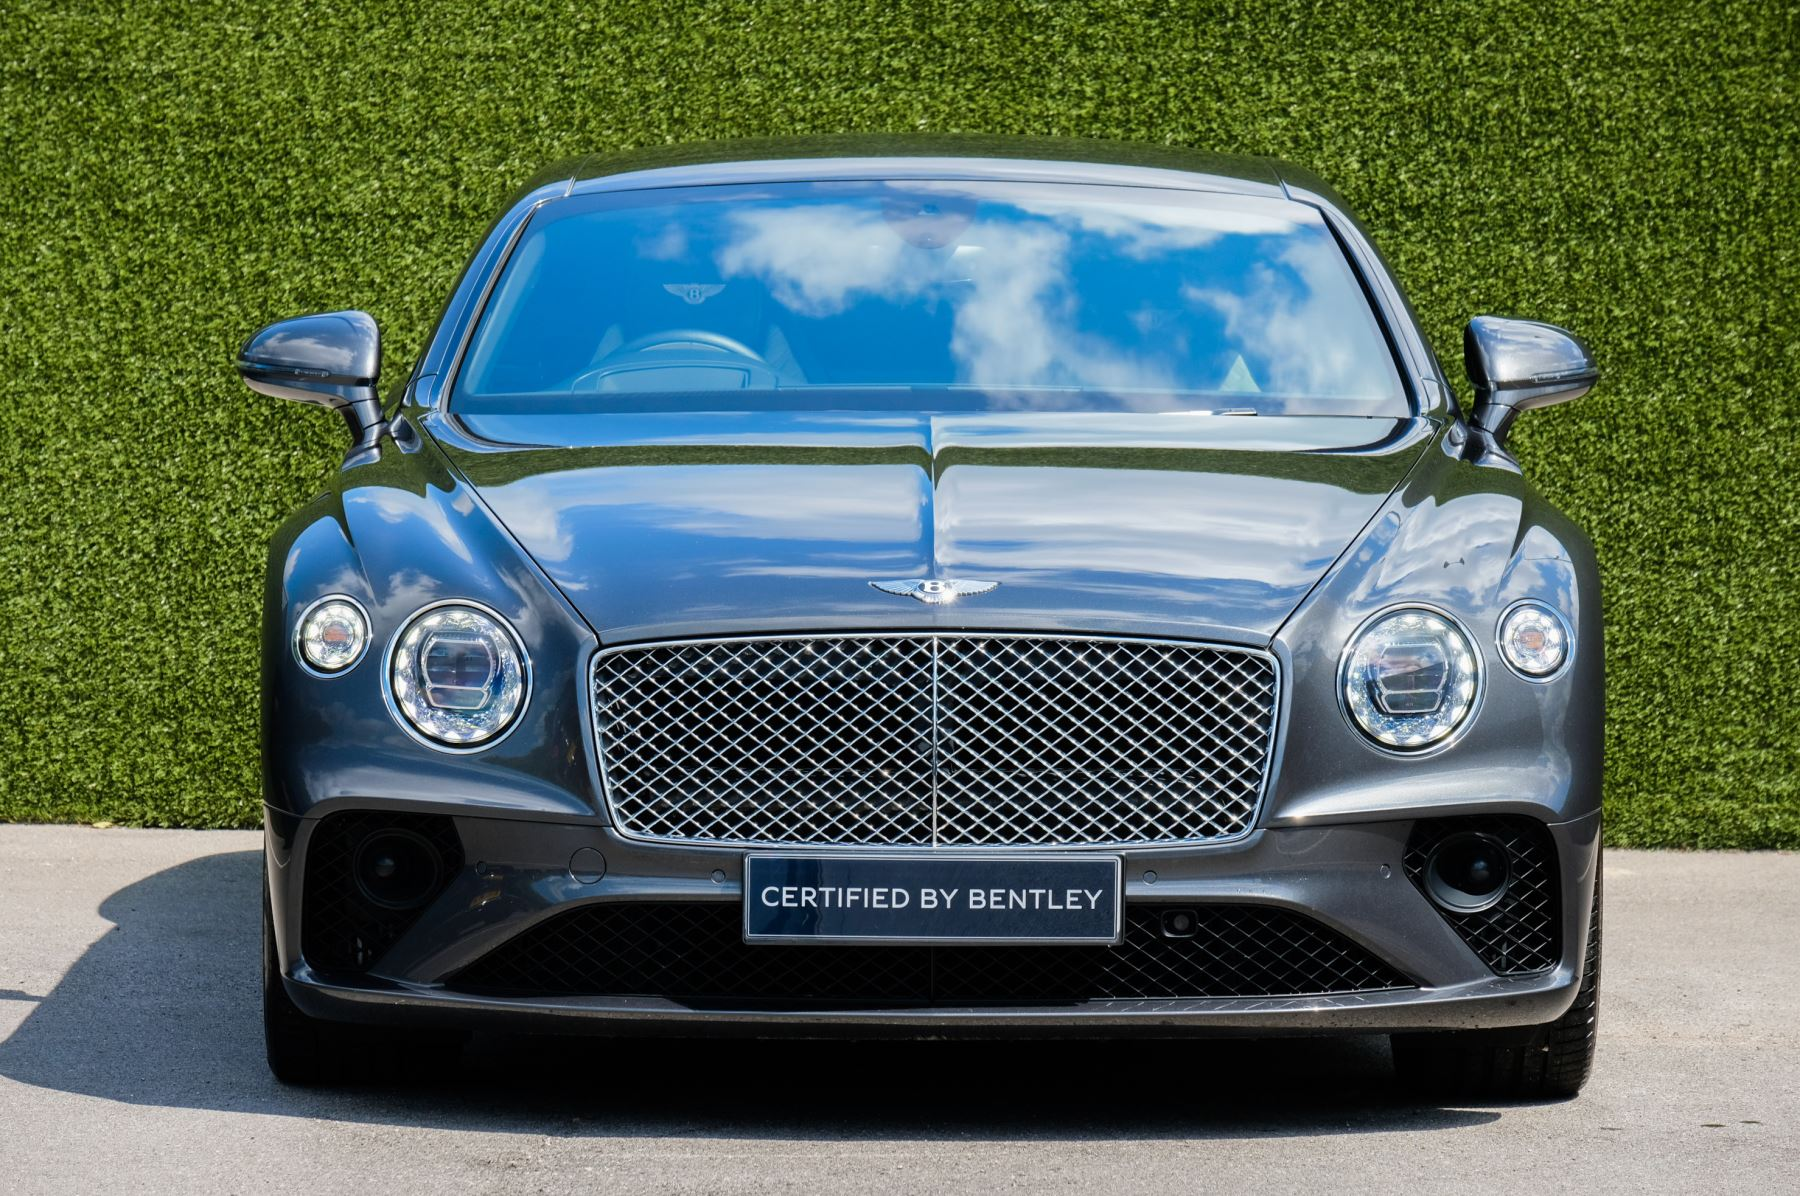 Bentley Continental GT 6.0 W12 - Mulliner Driving Specification image 2